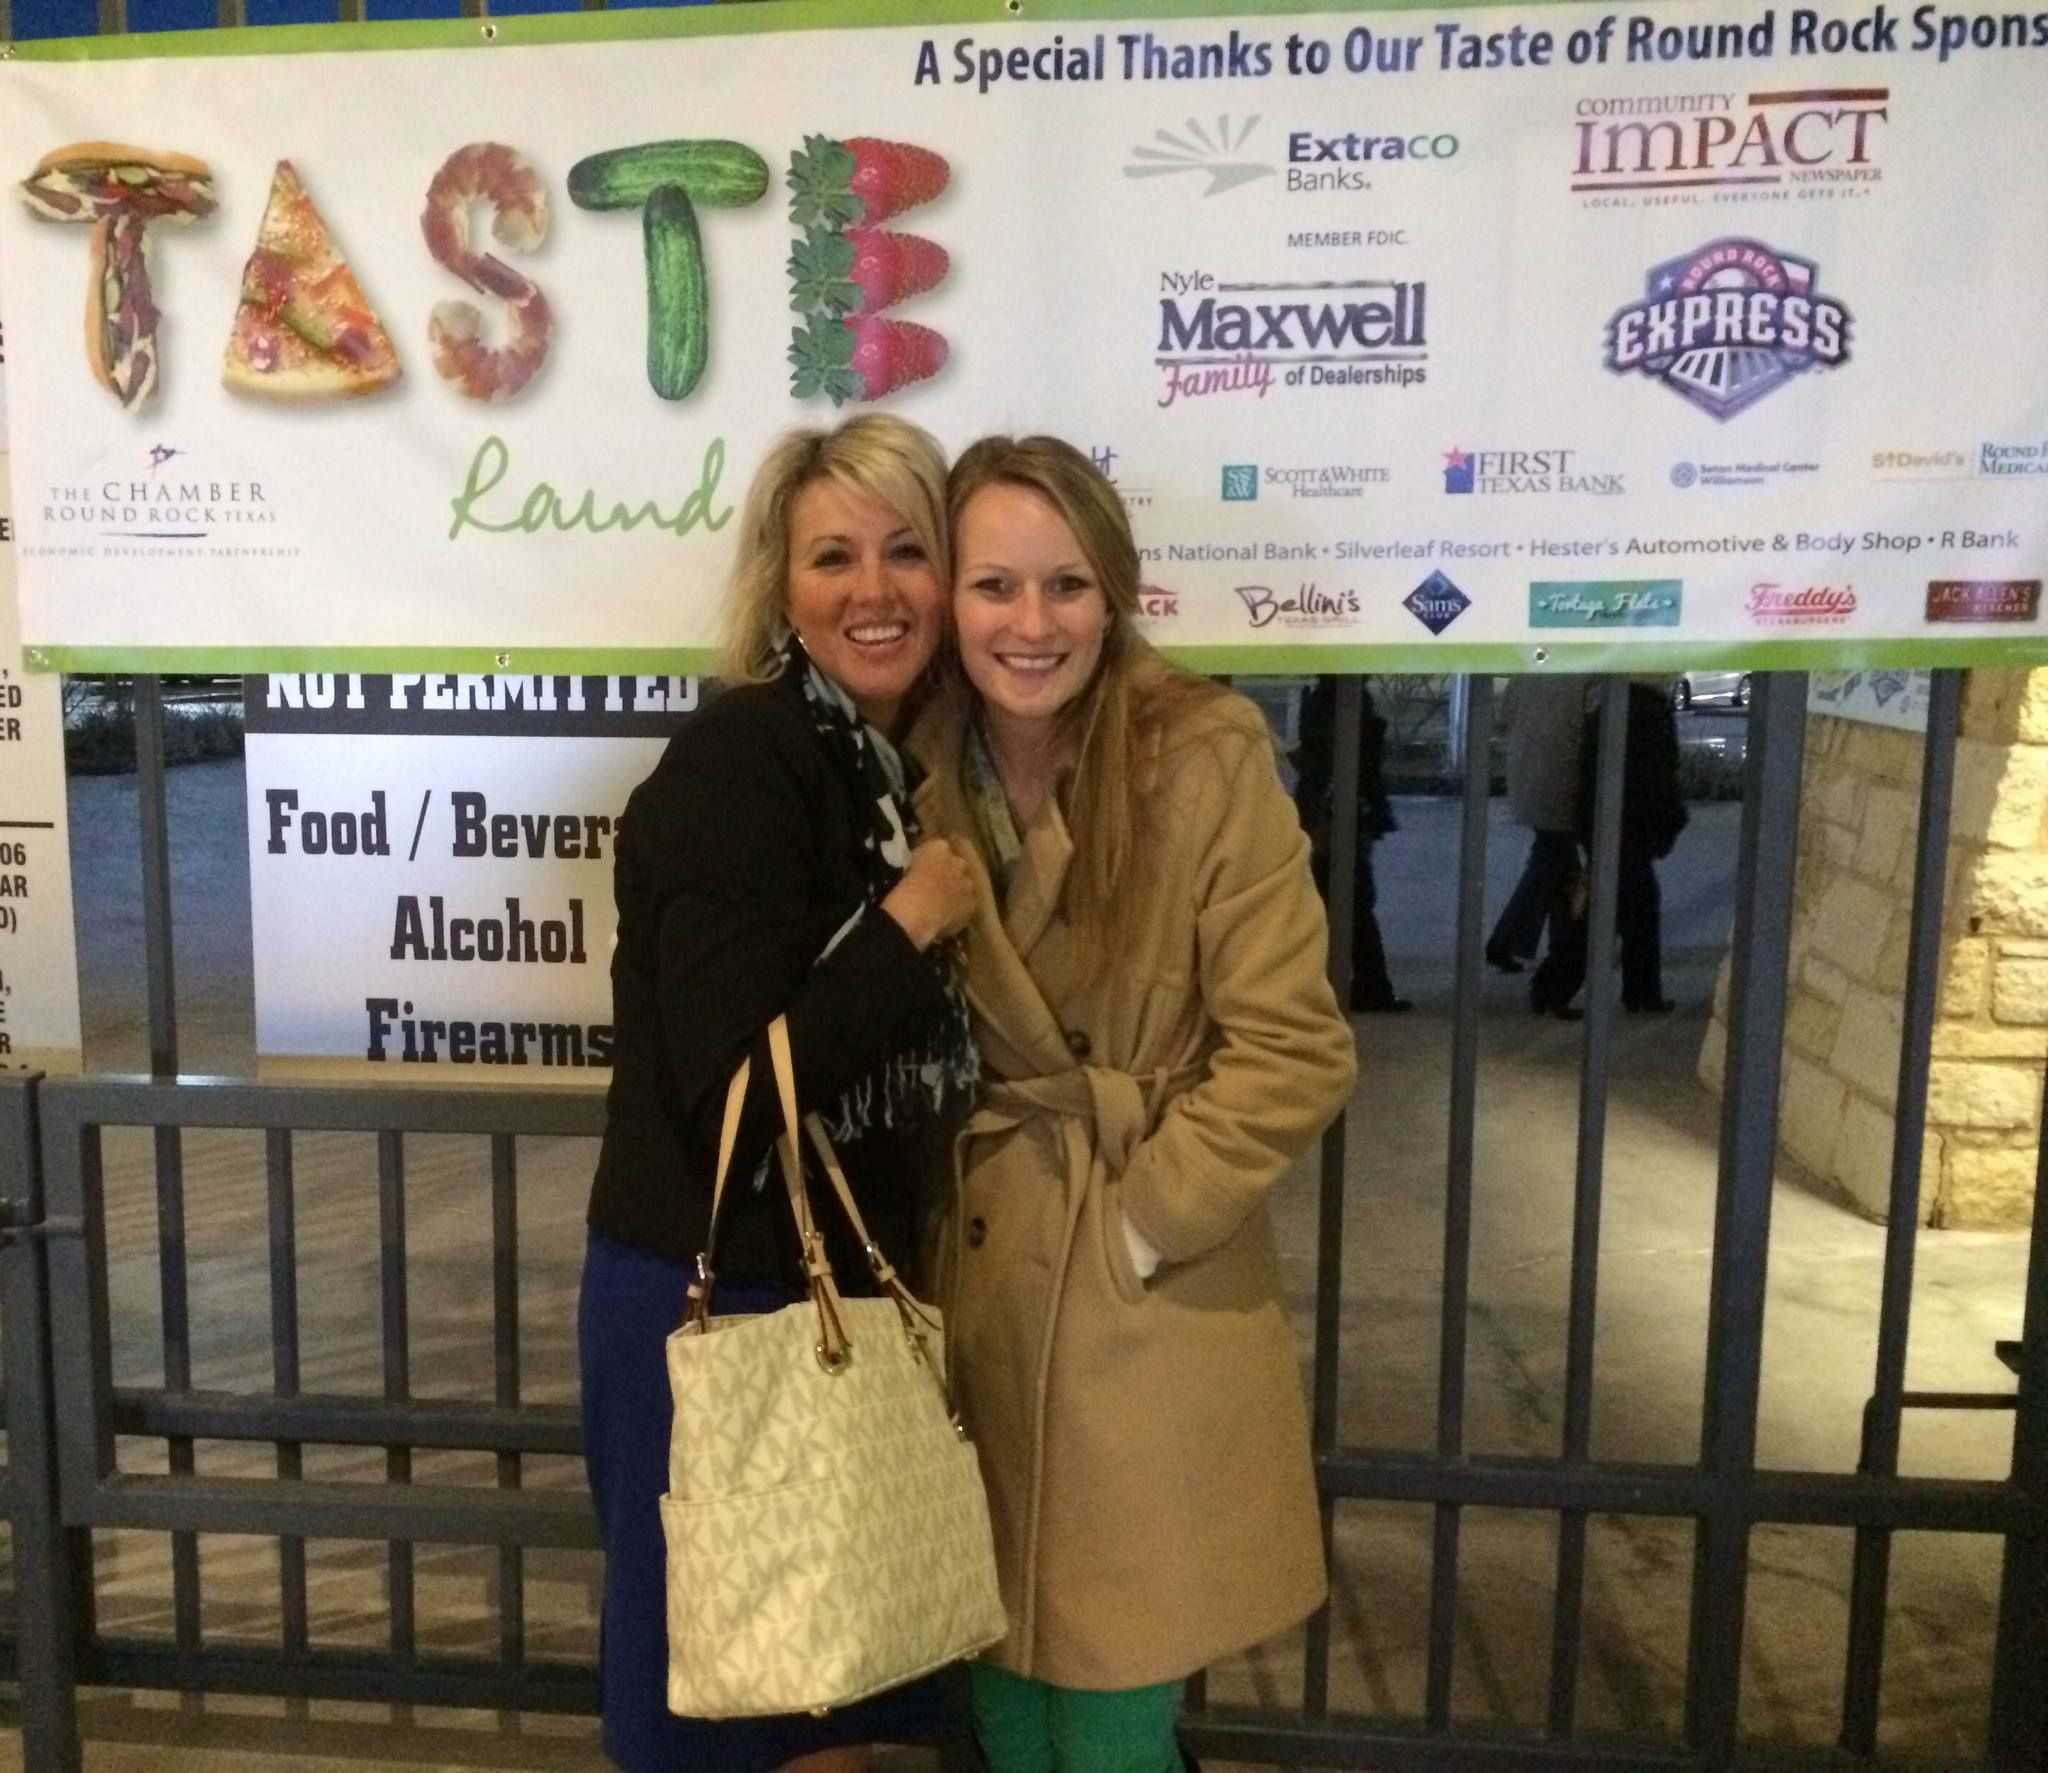 Dr. Whitehouse, attended Taste of Round Rock, an annual